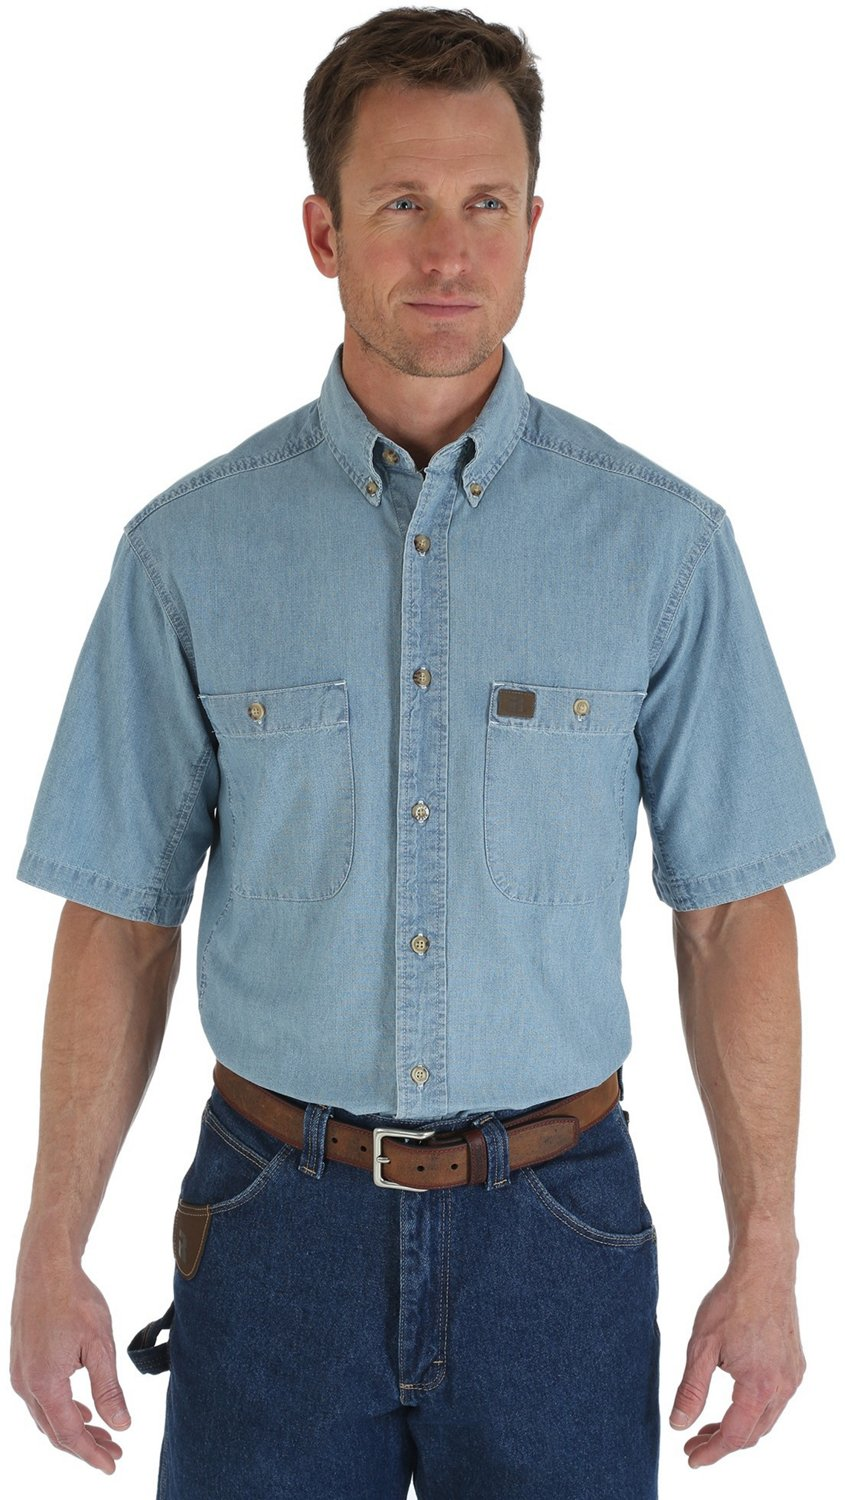 6e7d265df1d Riggs Workwear By Wrangler Mens Chambray Work Shirt – EDGE ...